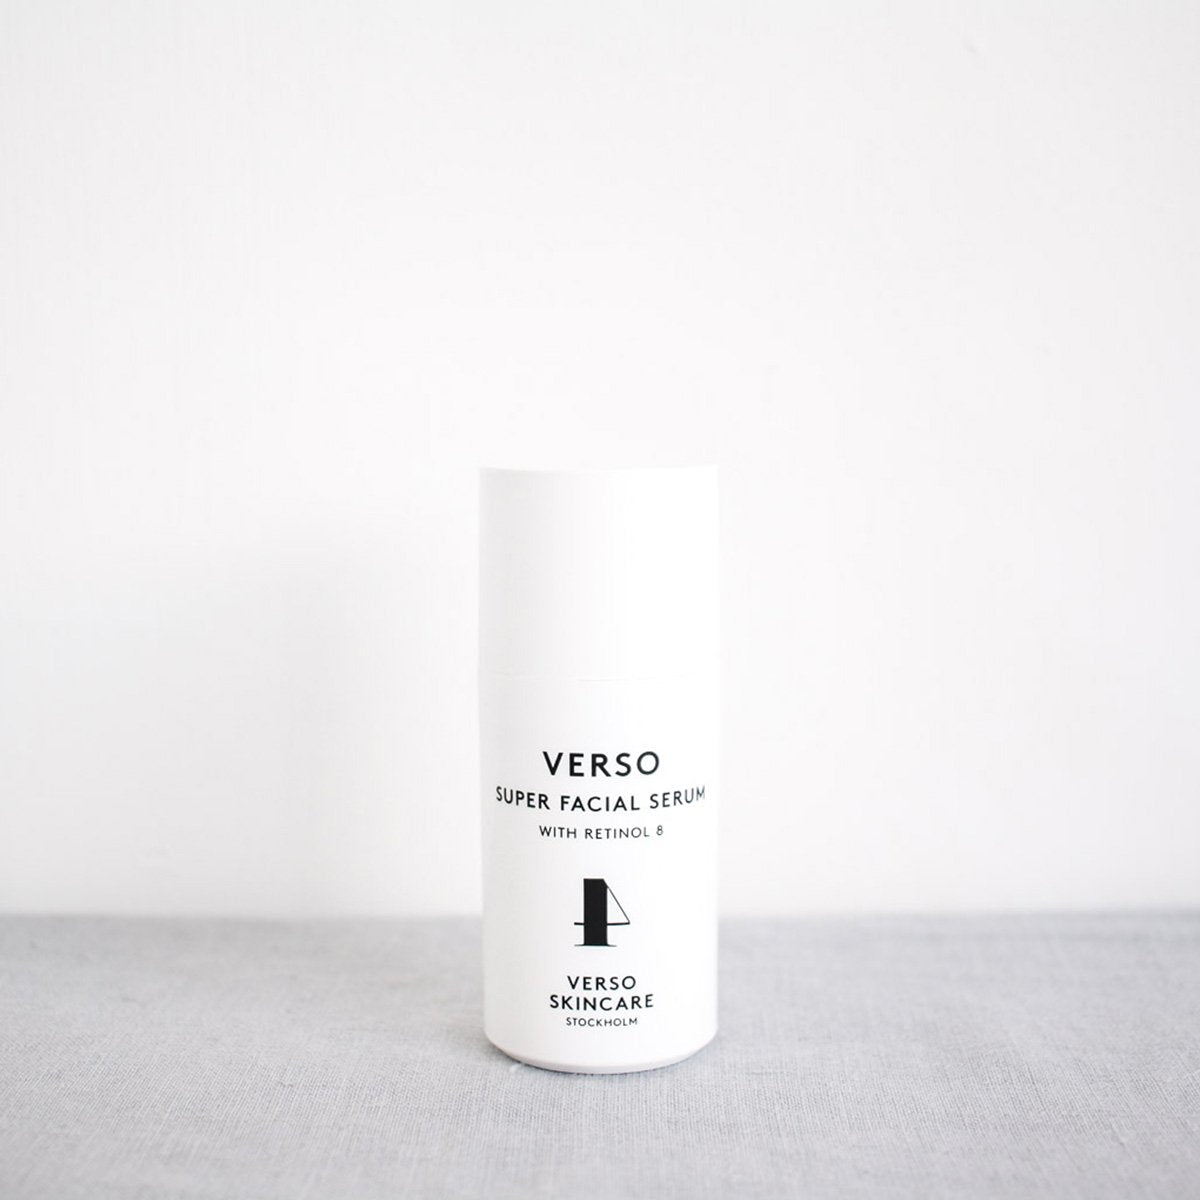 Verso Skincare - Natural Beauty - Skincare - Well Being - Swedish Skincare